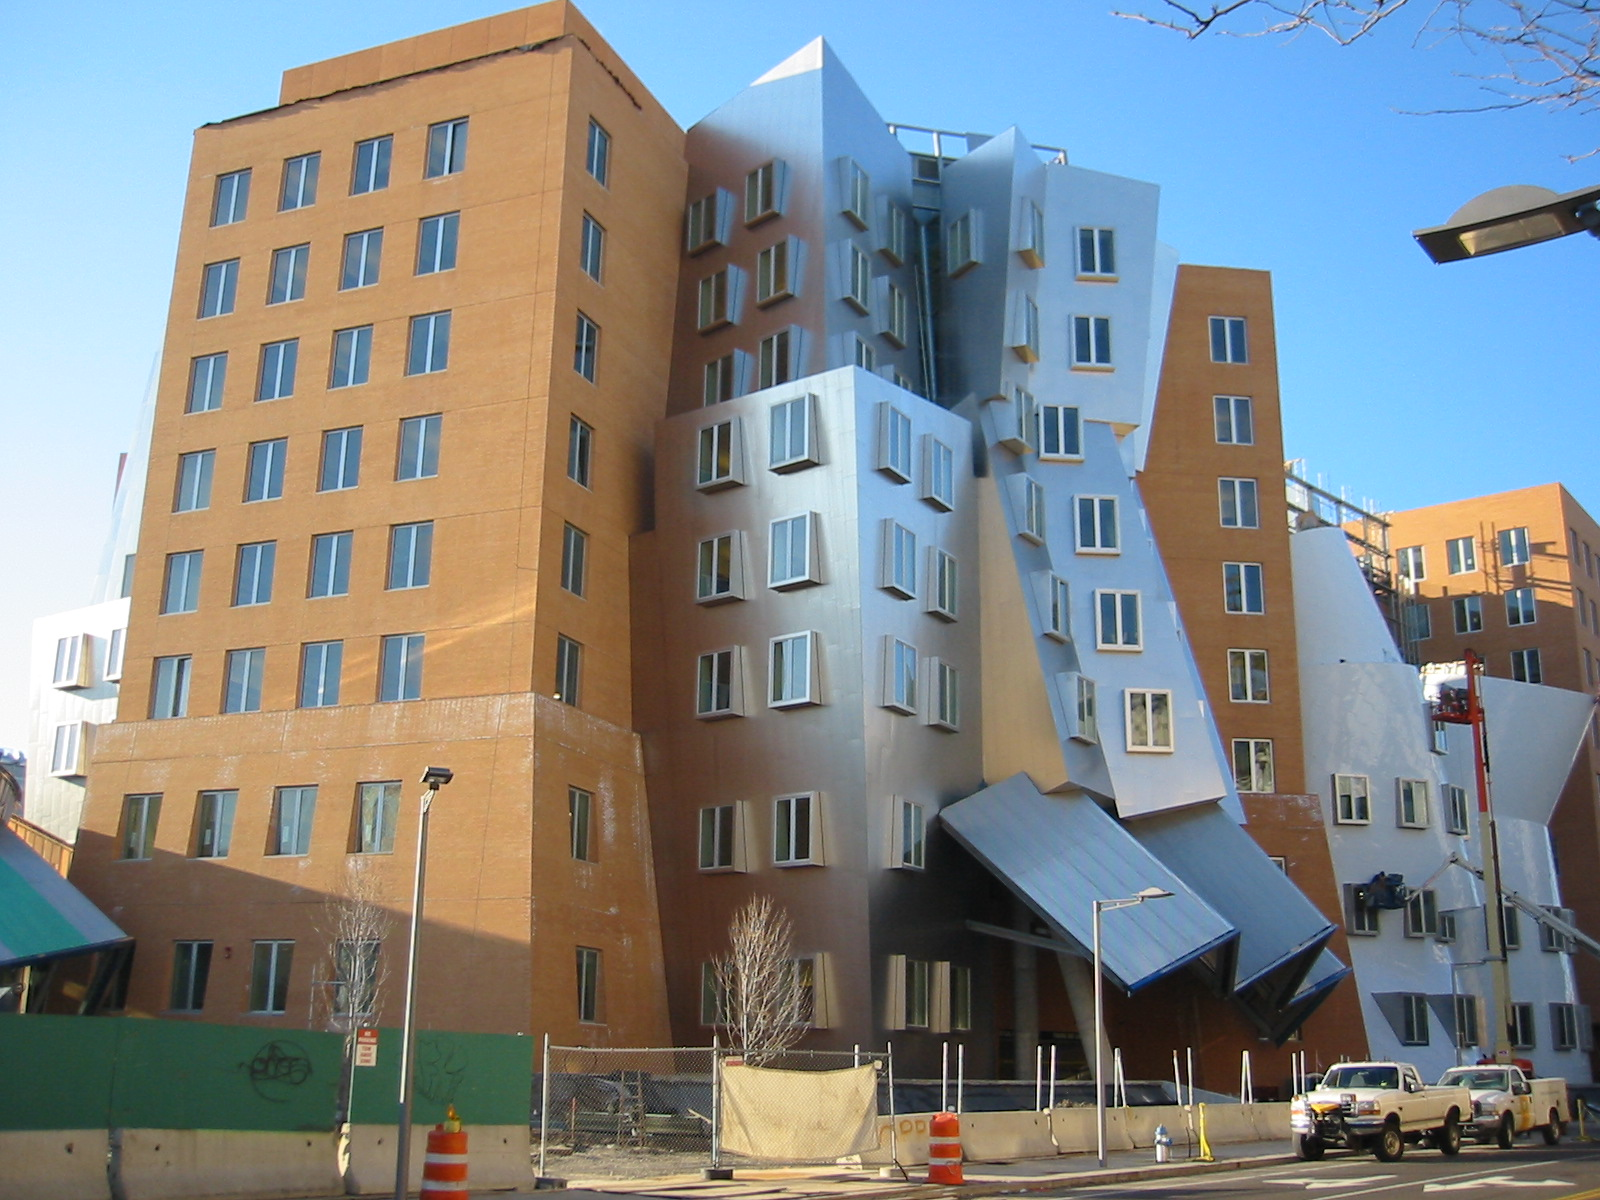 1 Massachusetts Institute Of Technology MIT Top 10 Best Universities For Architecture Around The World